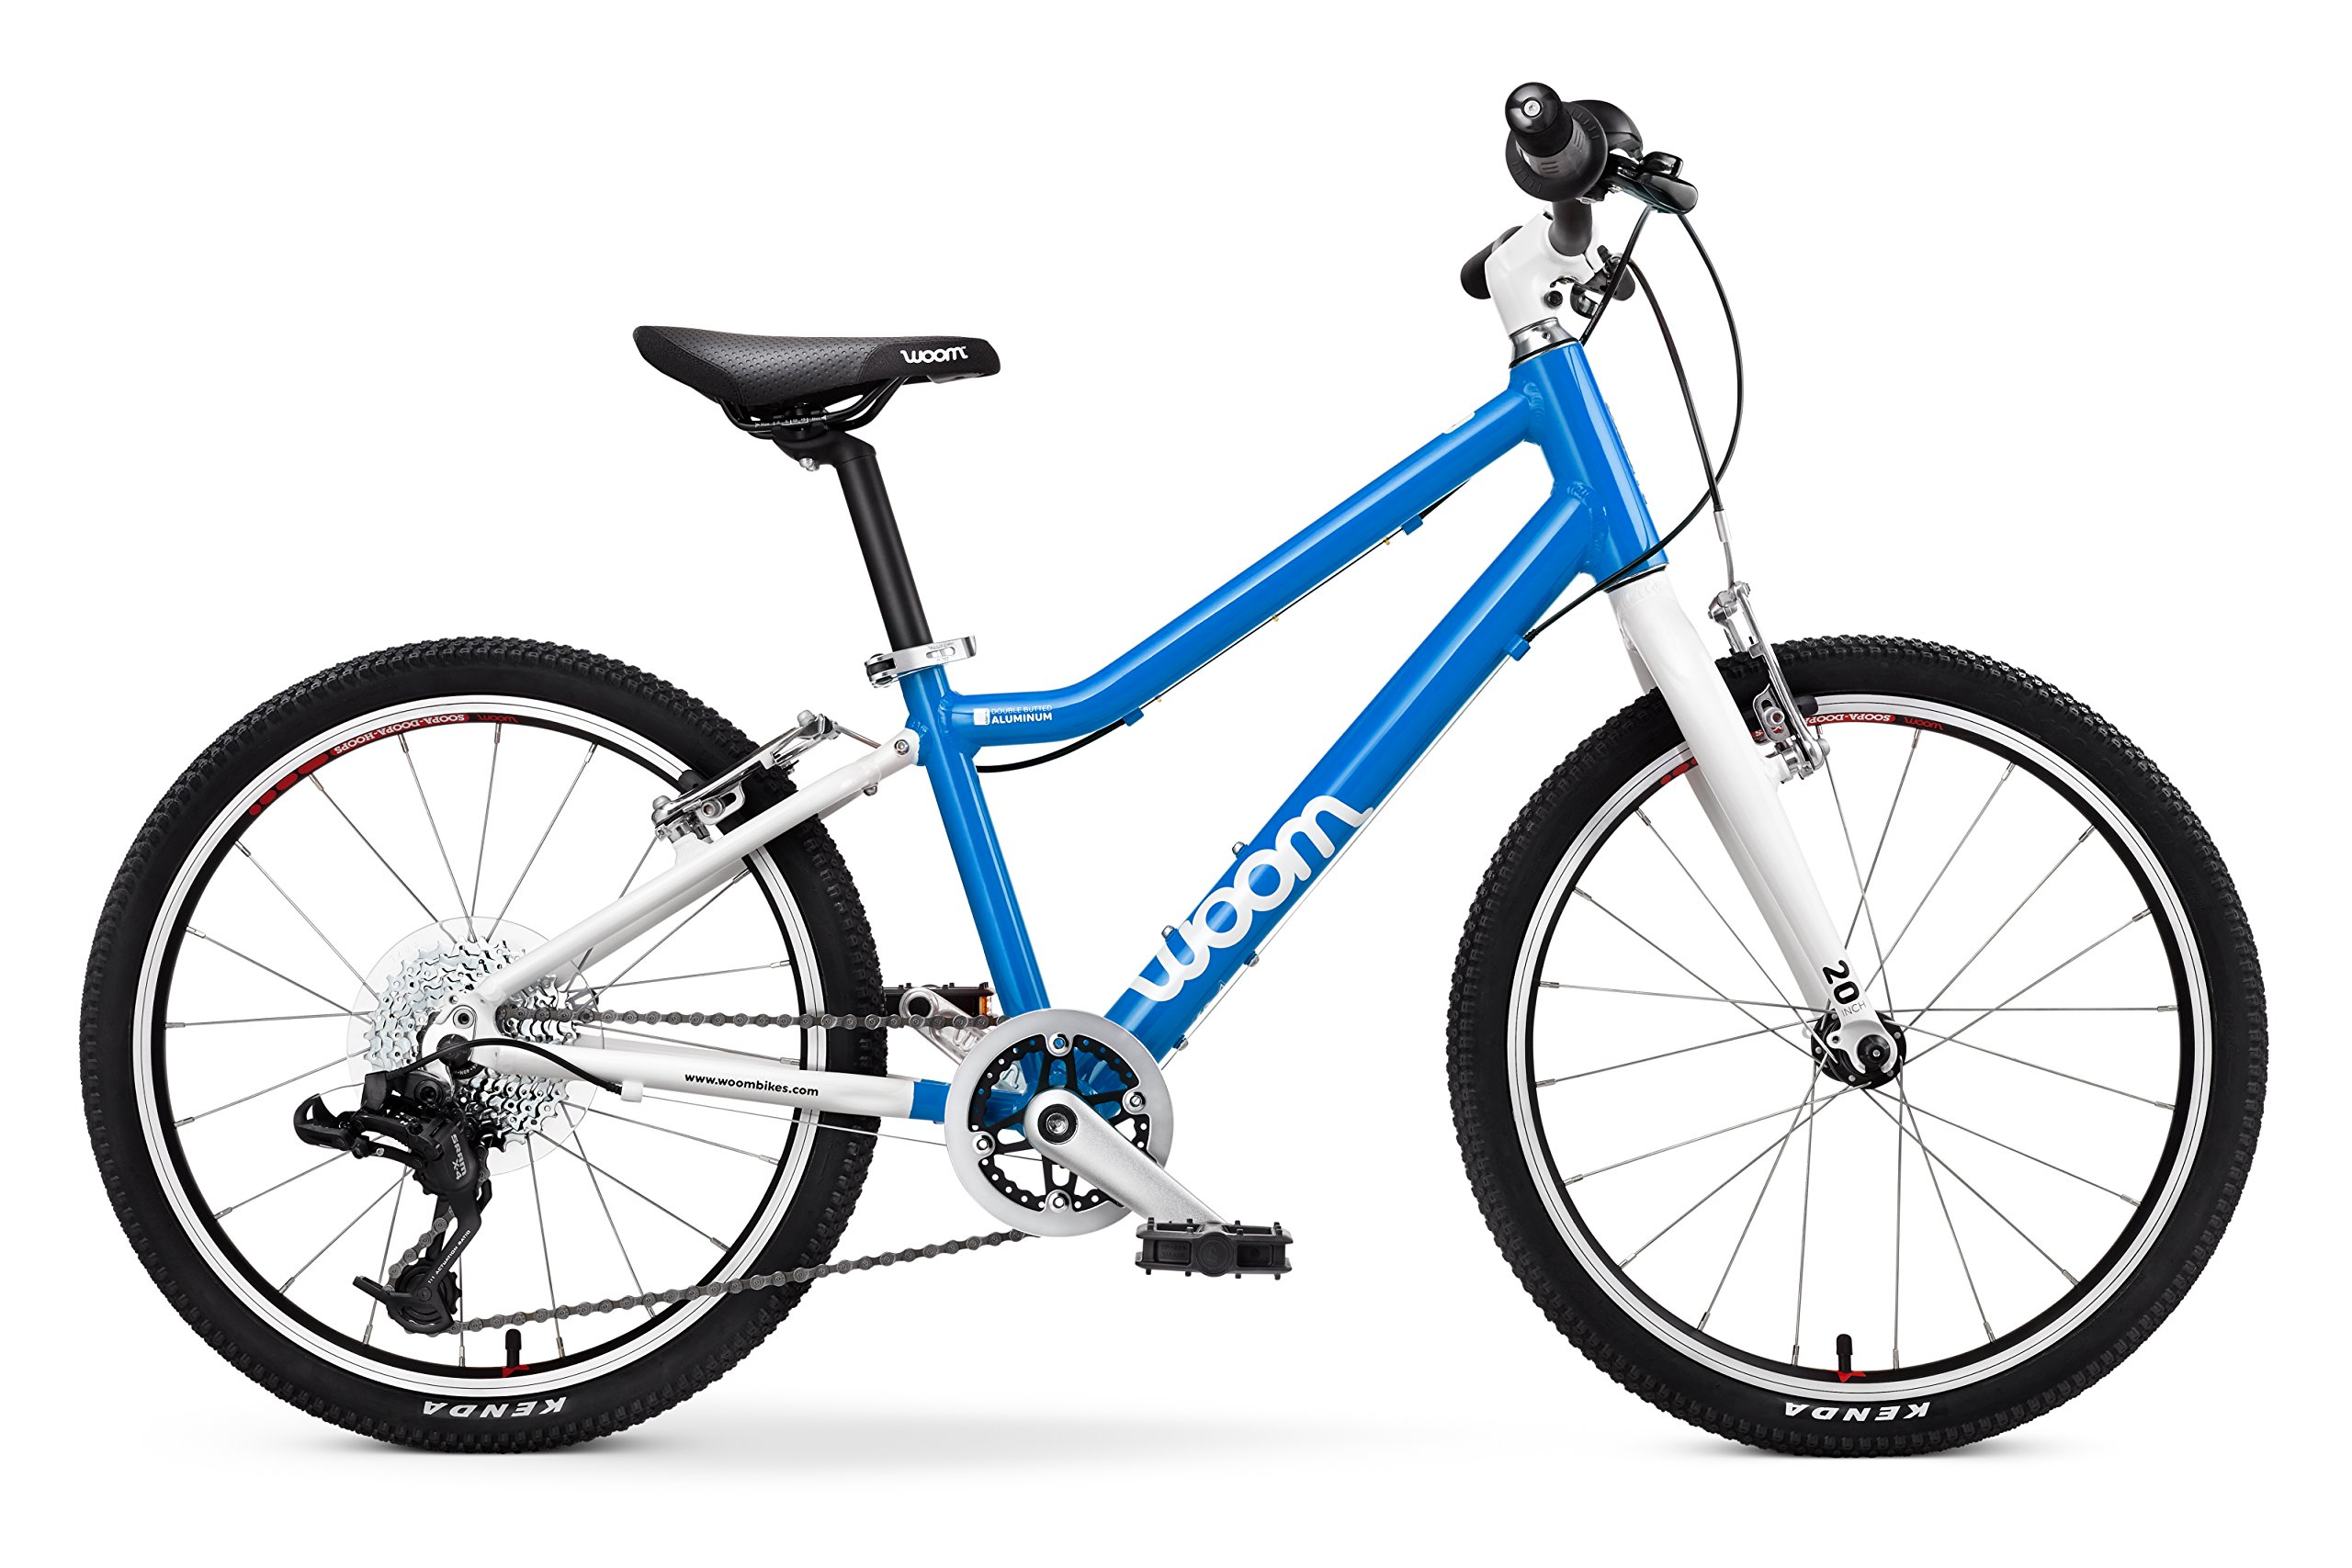 "Woom 4 Pedal Bike 20"", 8-speed, Ages 6 to 8 Years, Blue by WOOM BIKES USA"